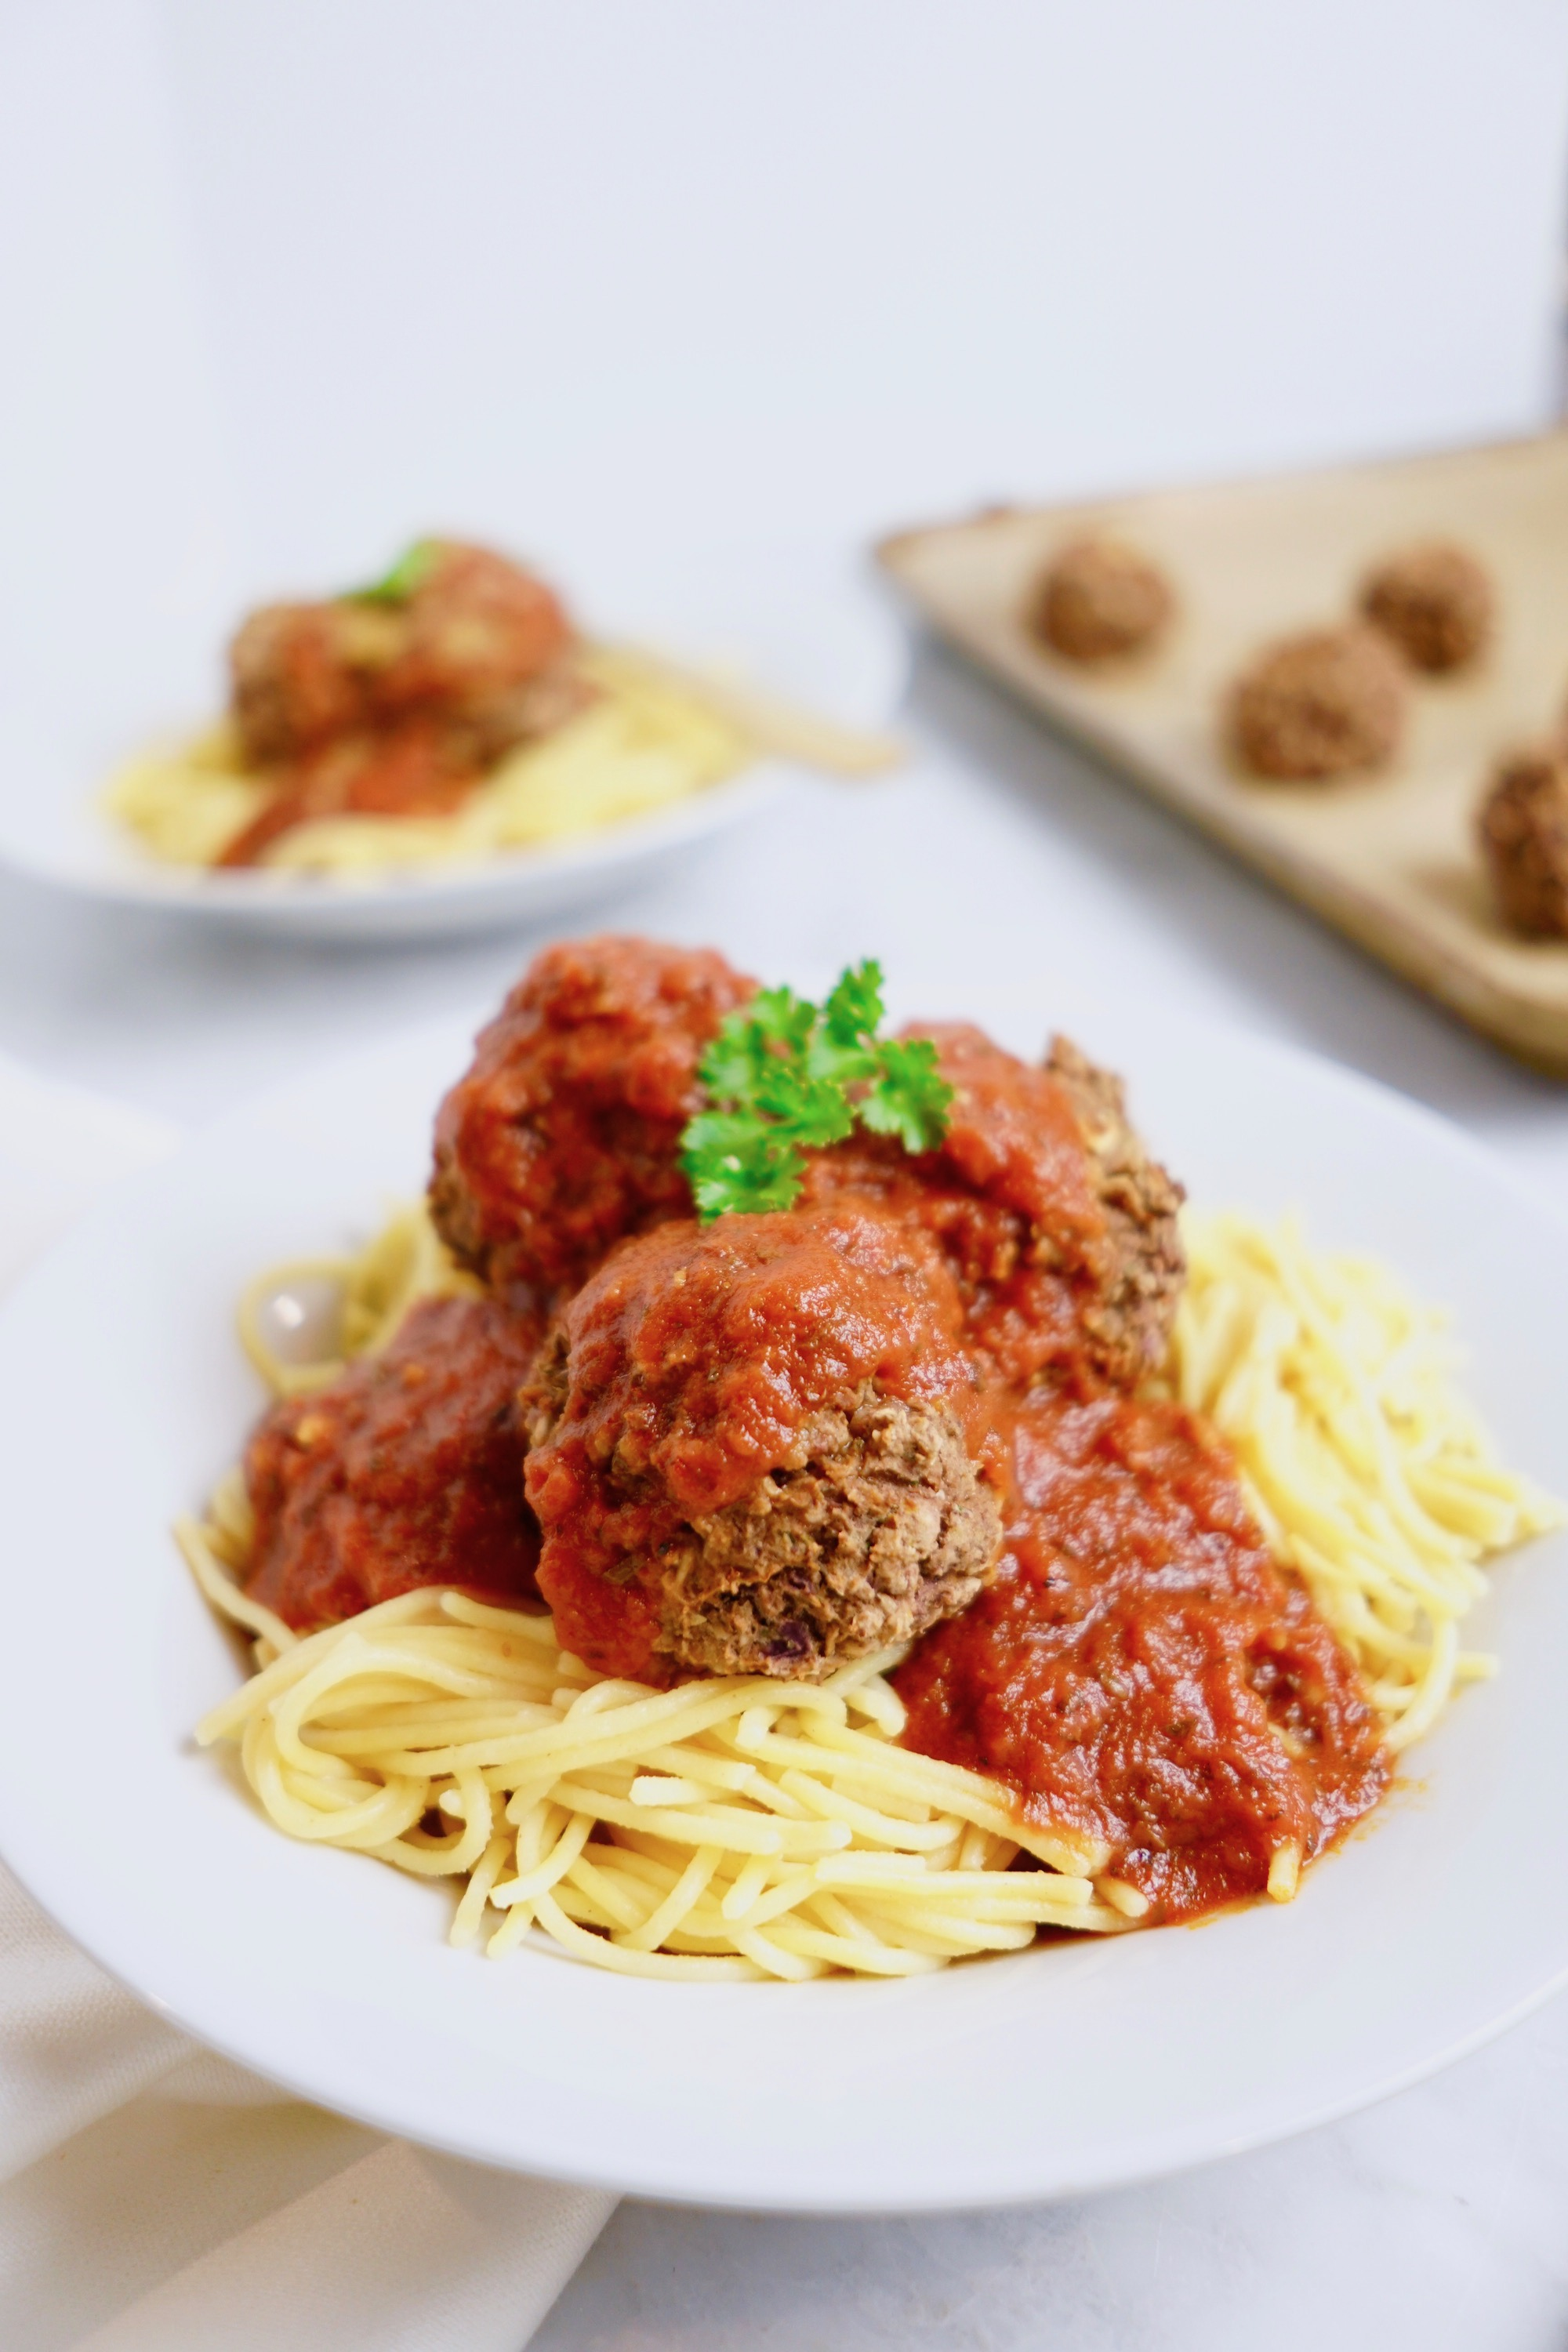 Vegan Spaghetti and Meatballs Recipe